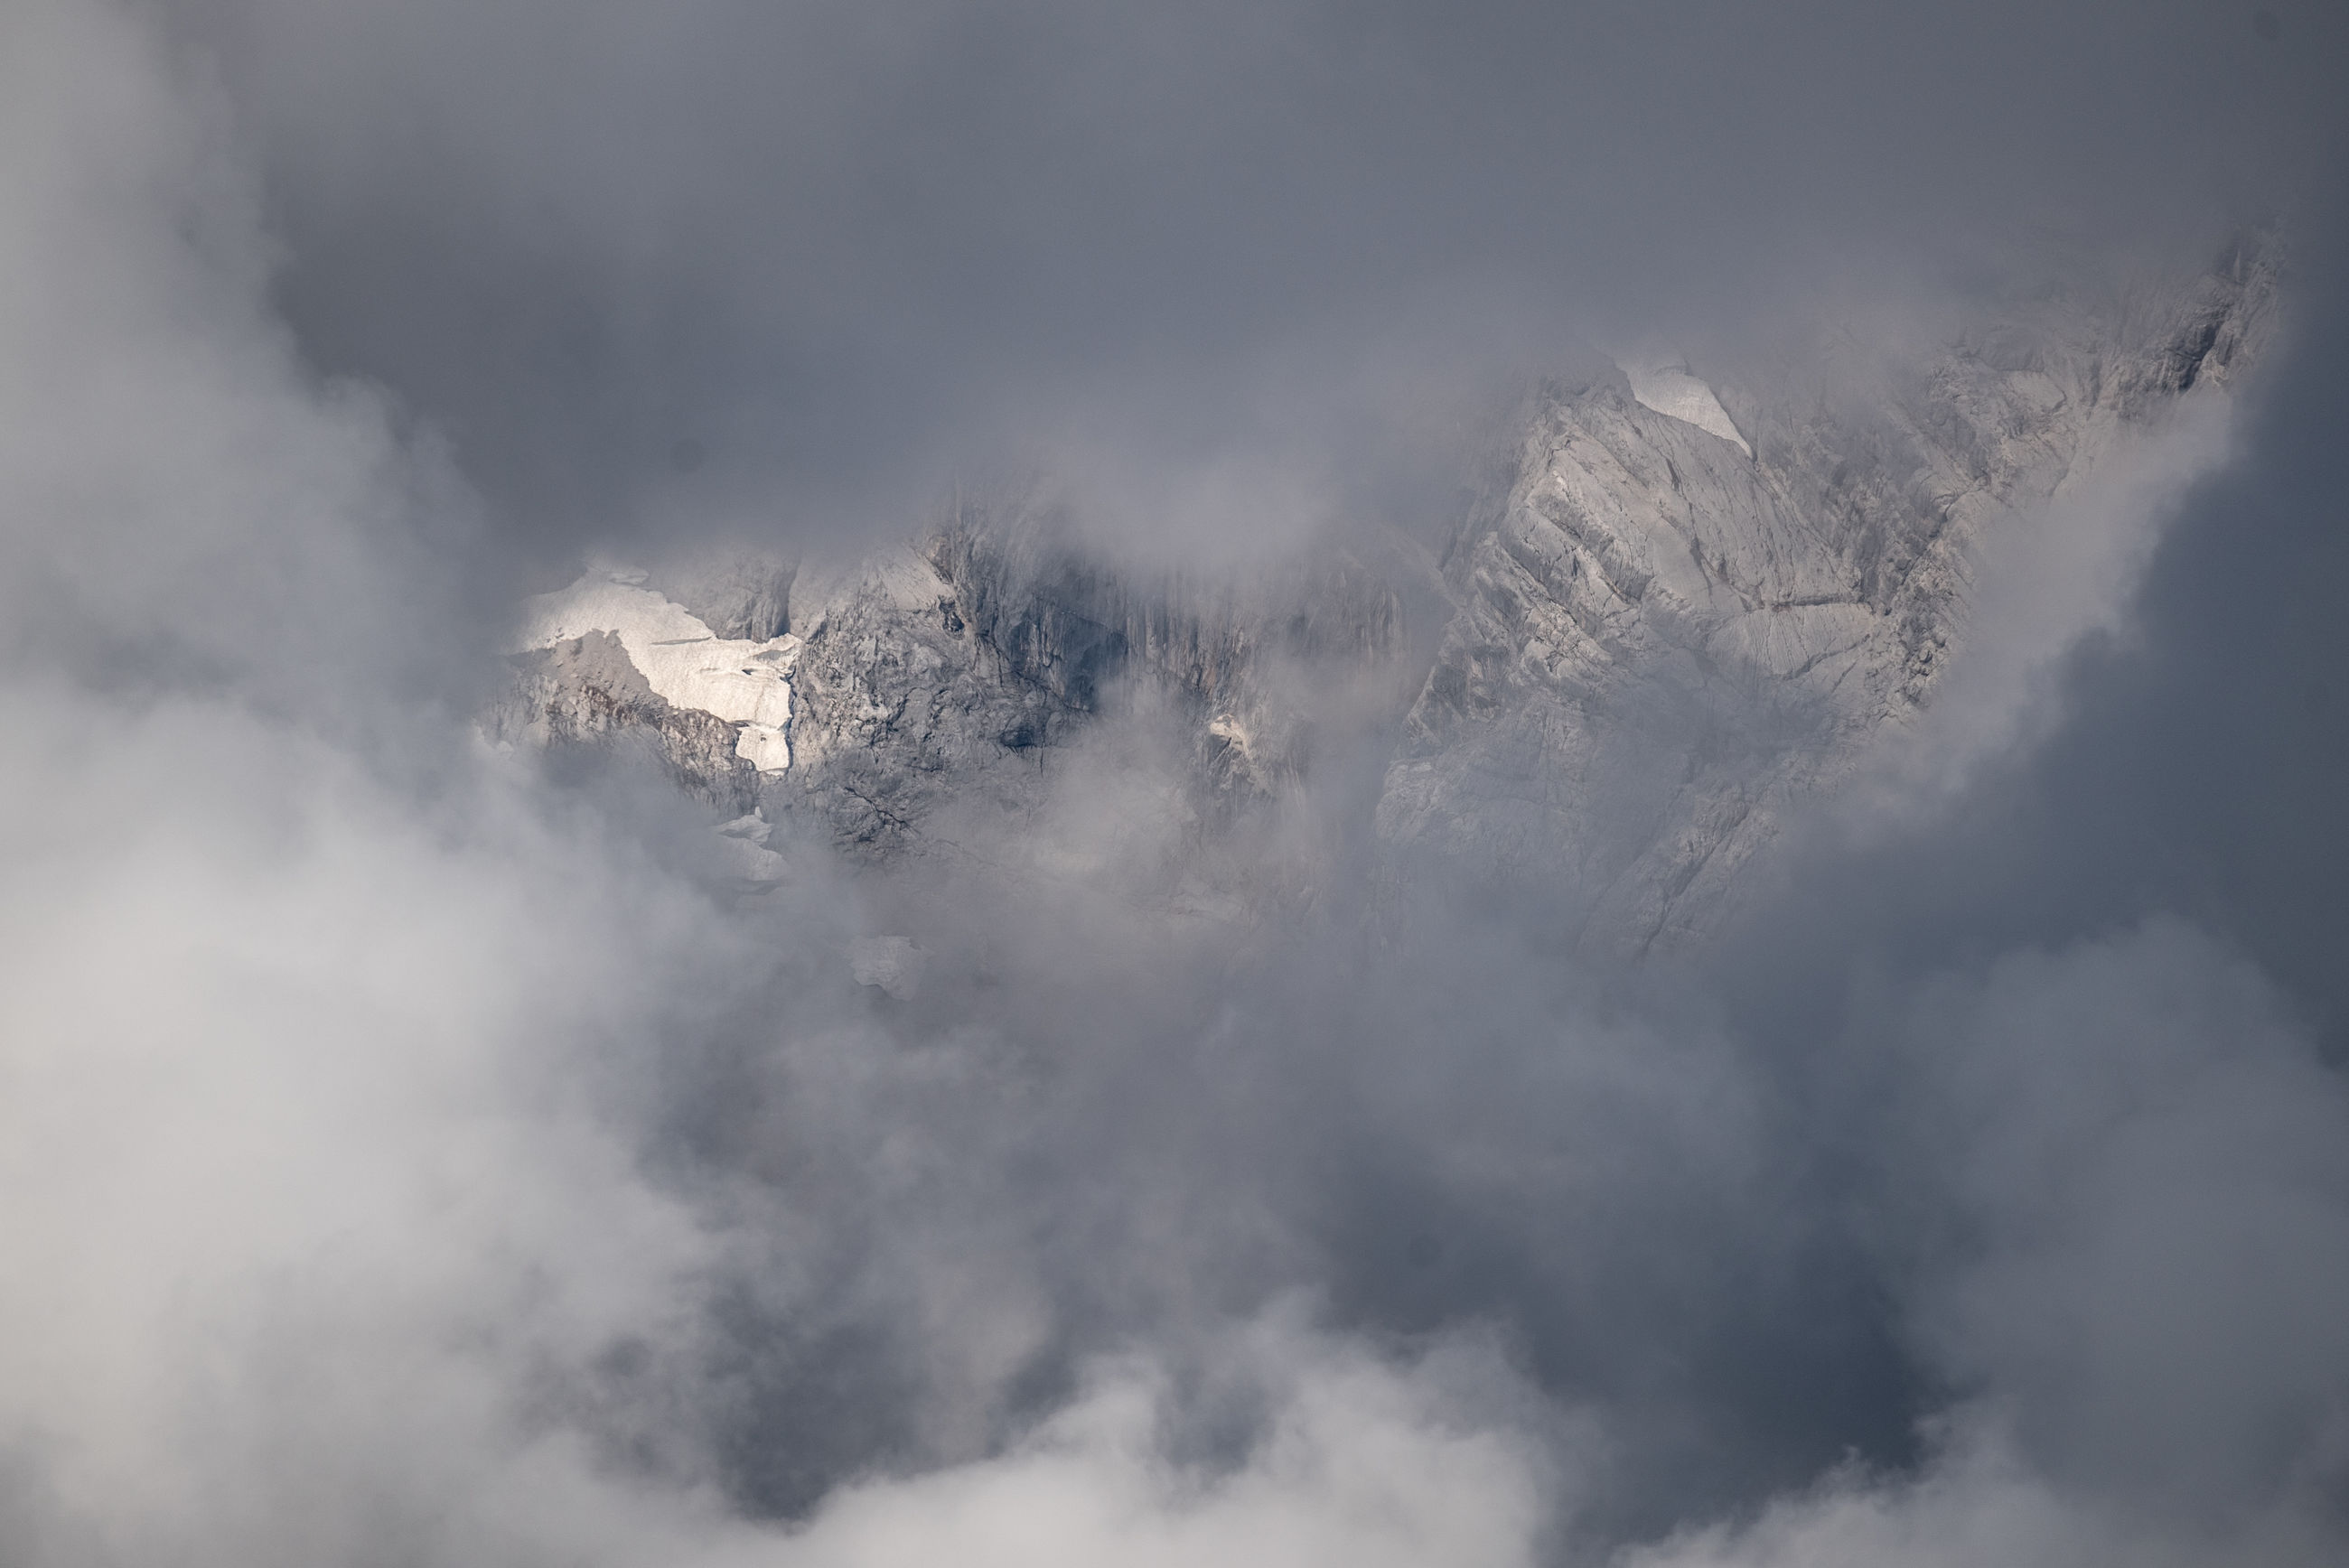 LOW ANGLE VIEW OF MAJESTIC SNOWCAPPED MOUNTAIN AGAINST SKY